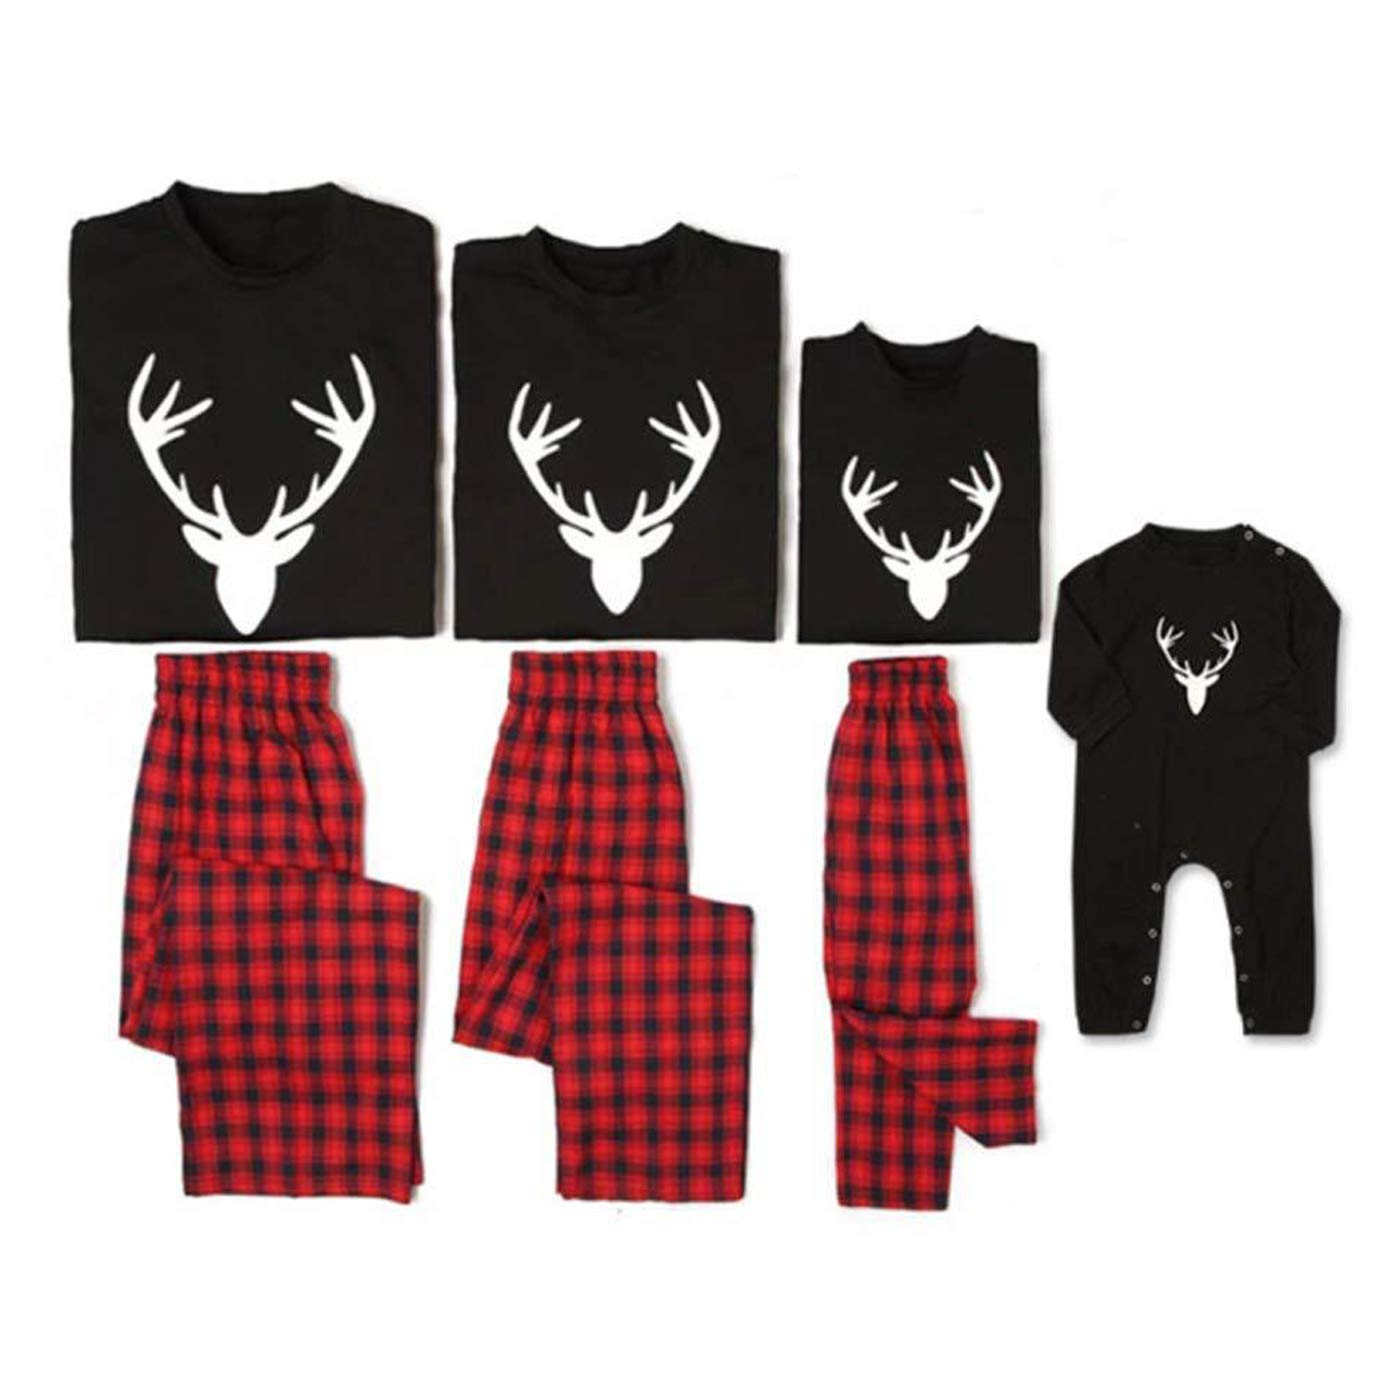 Family Matching Christmas Pajamas Sets Deer Long Sleeve Tee Plaid Pants Loungewear Sleepwear Homewear